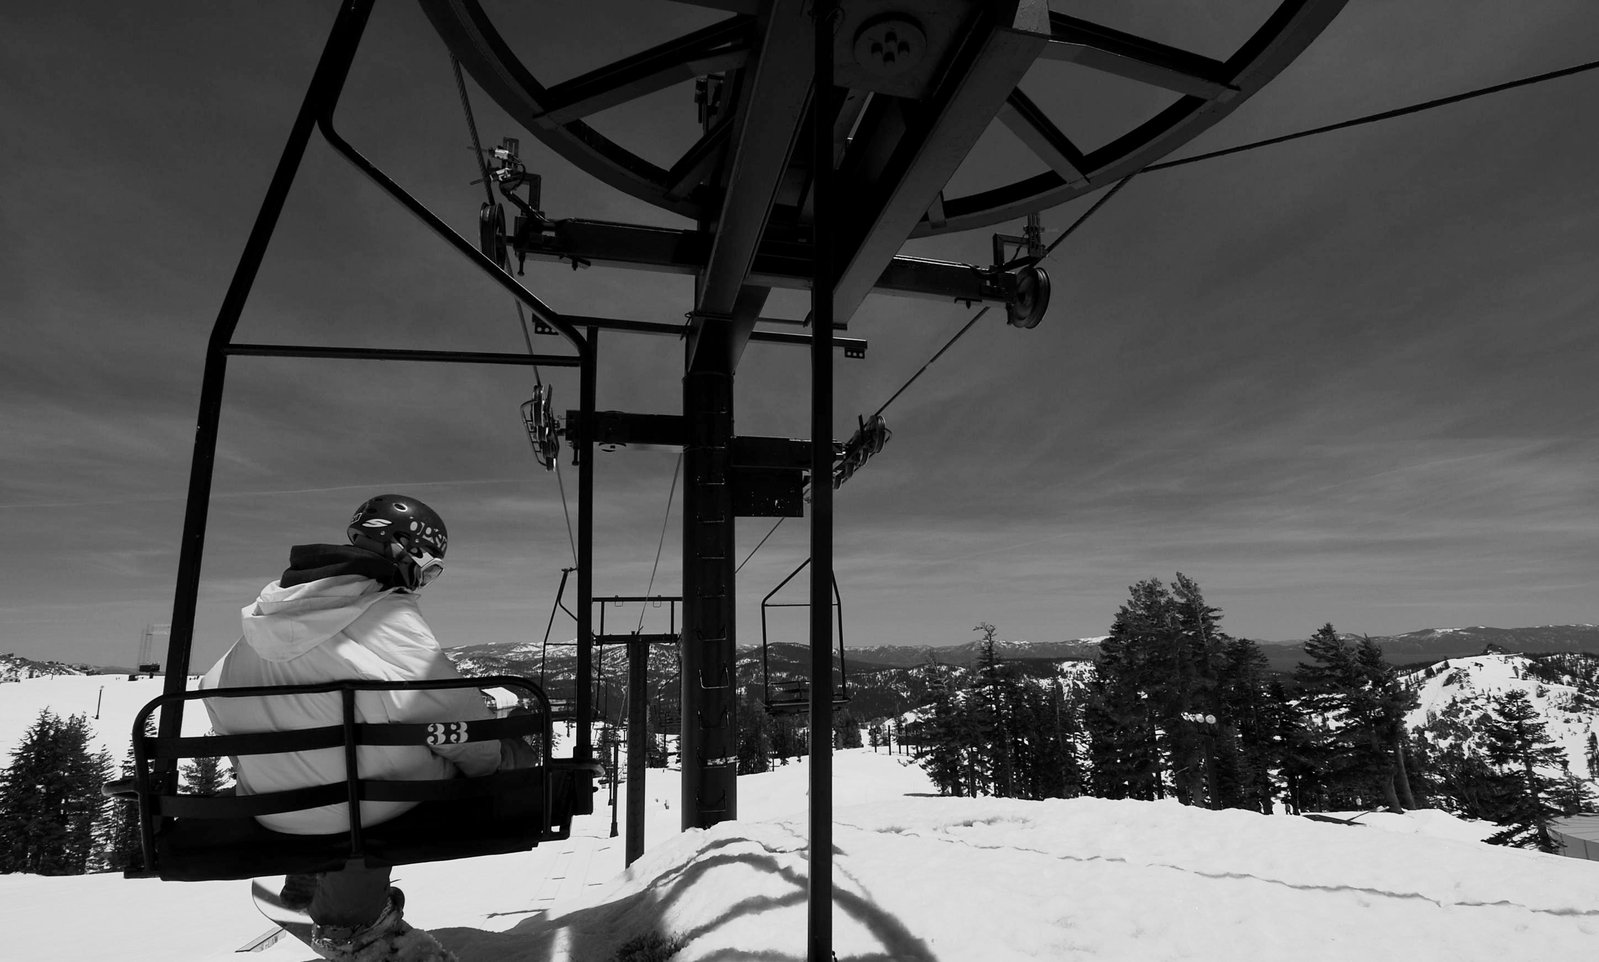 My buddy on the last day at Squaw